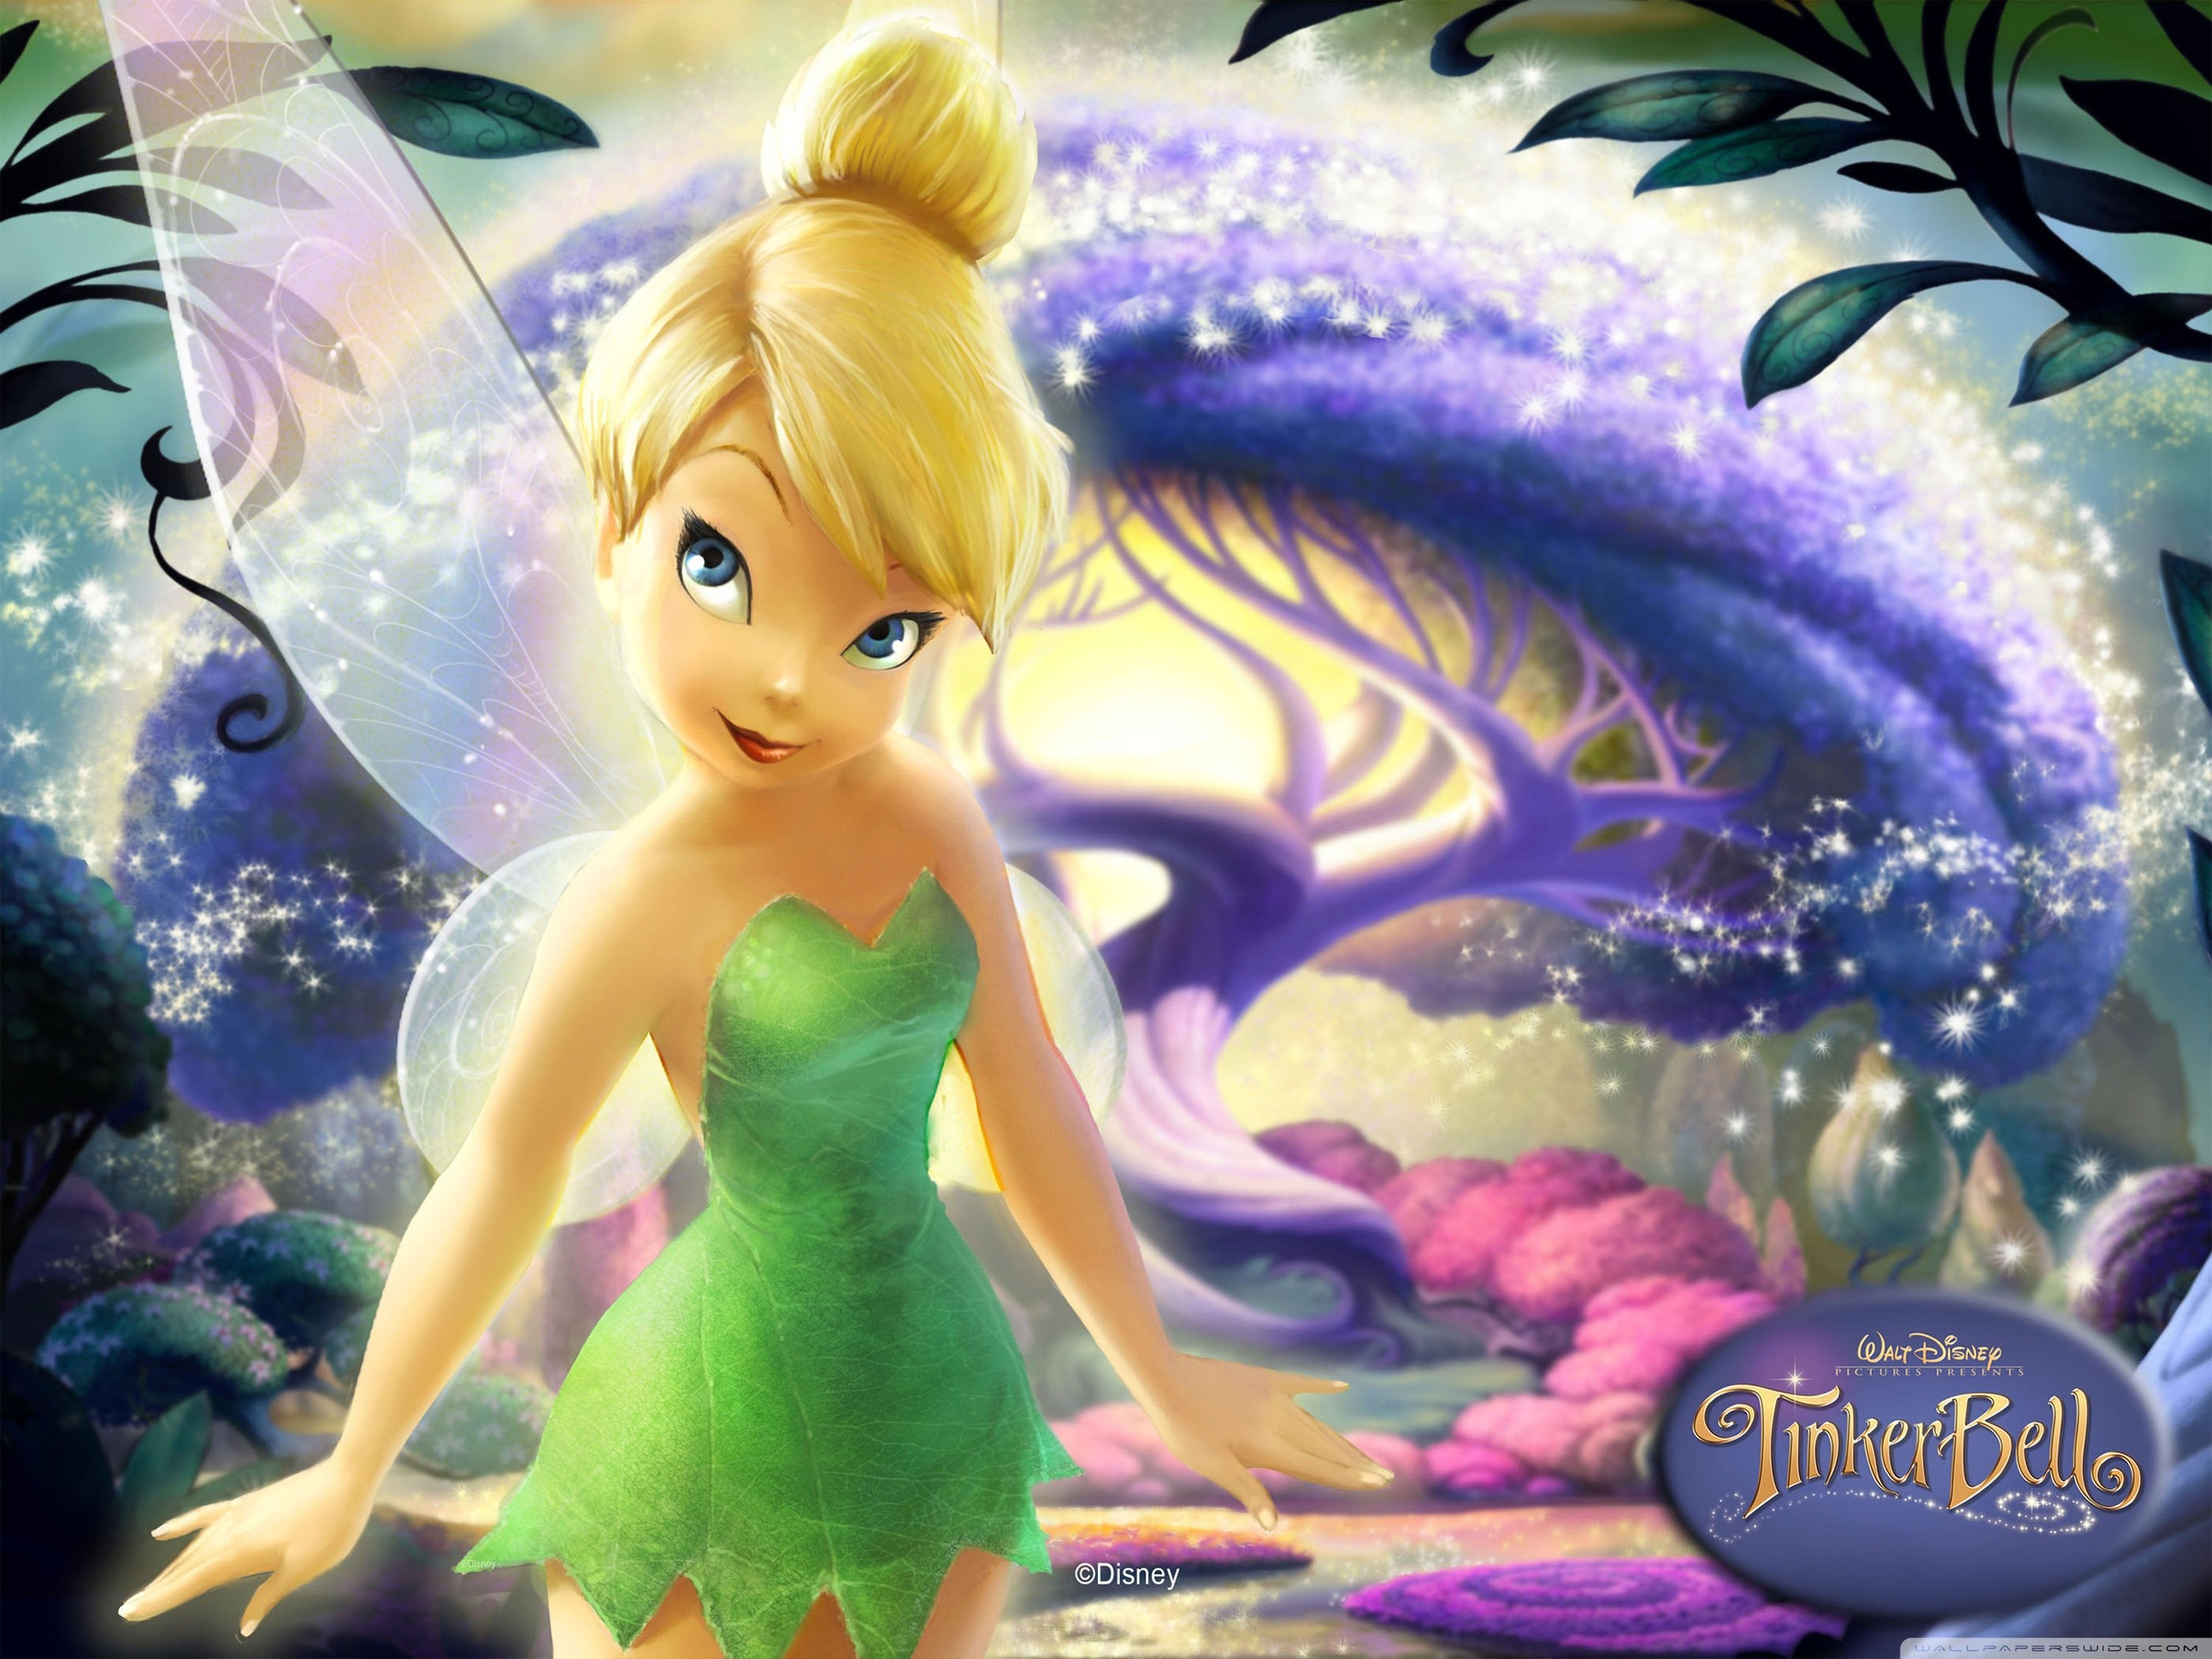 Tinkerbell creations